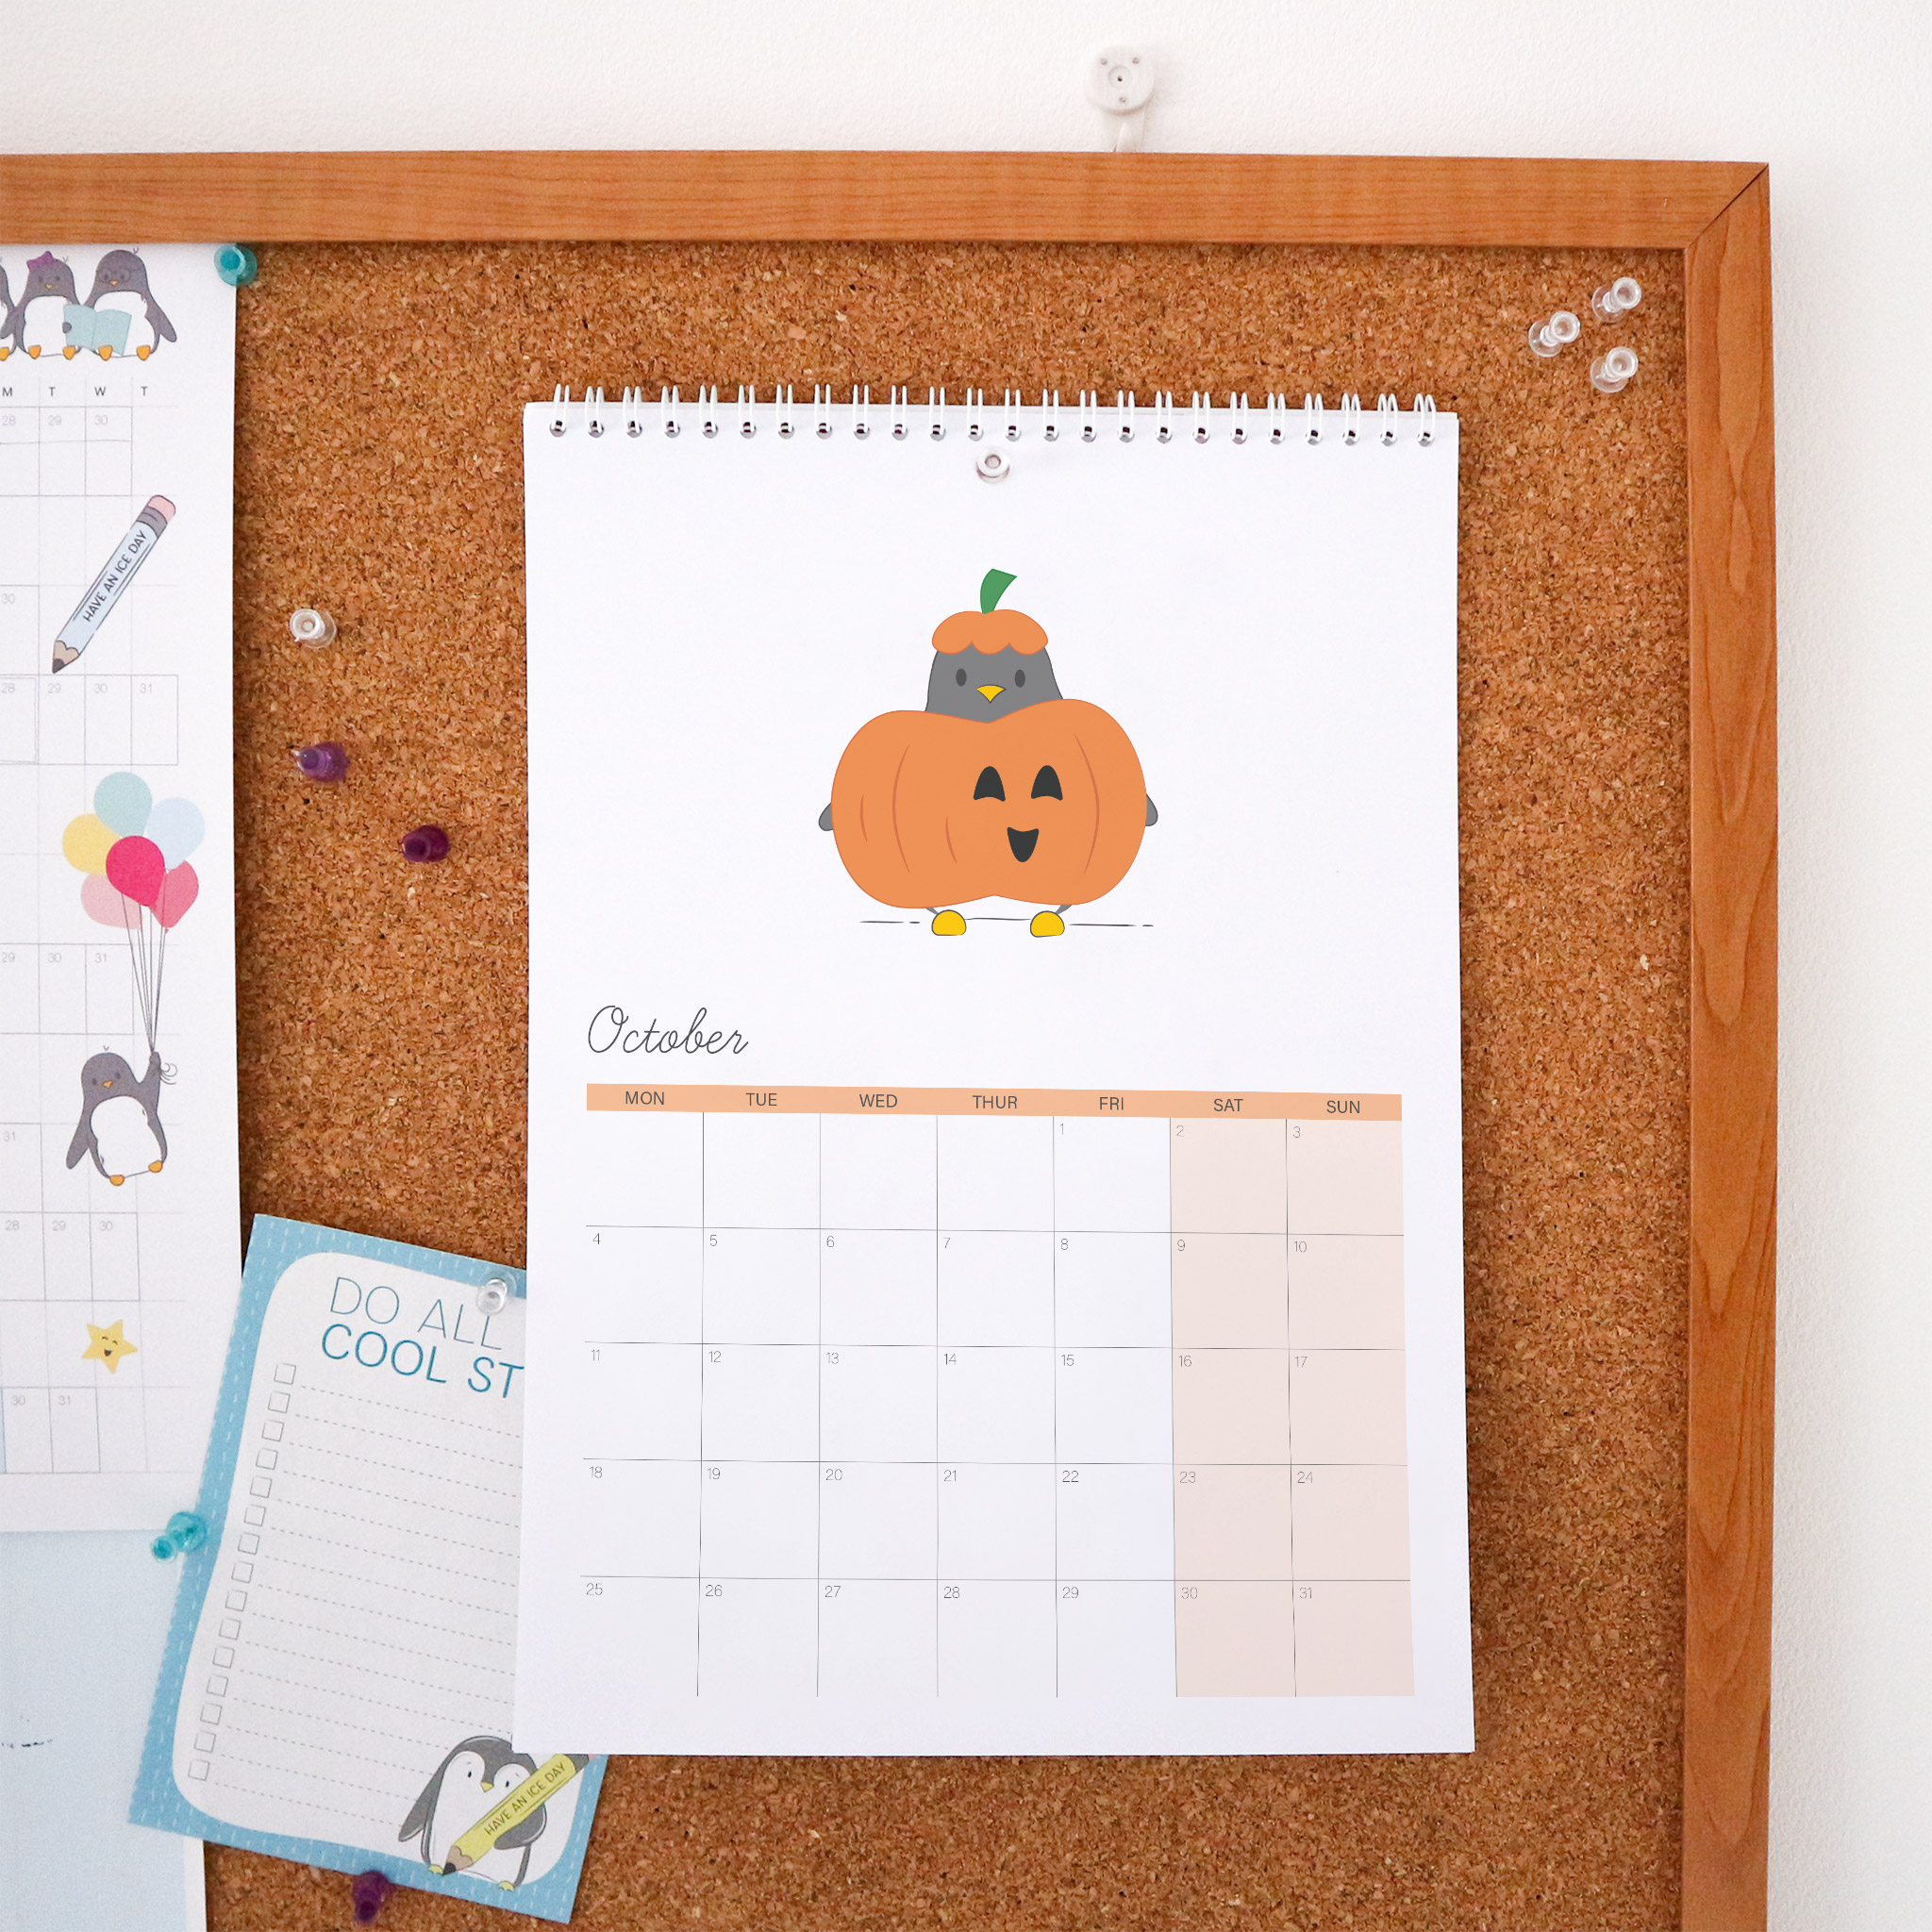 The October page of the calendar is an illustration of Penguin dressed as a pumpkin, he has a smiling orange pumpkin around his middle and is wearing an orange and green hat. This Calendar is wire bound A4 and is styled against a cork board background.